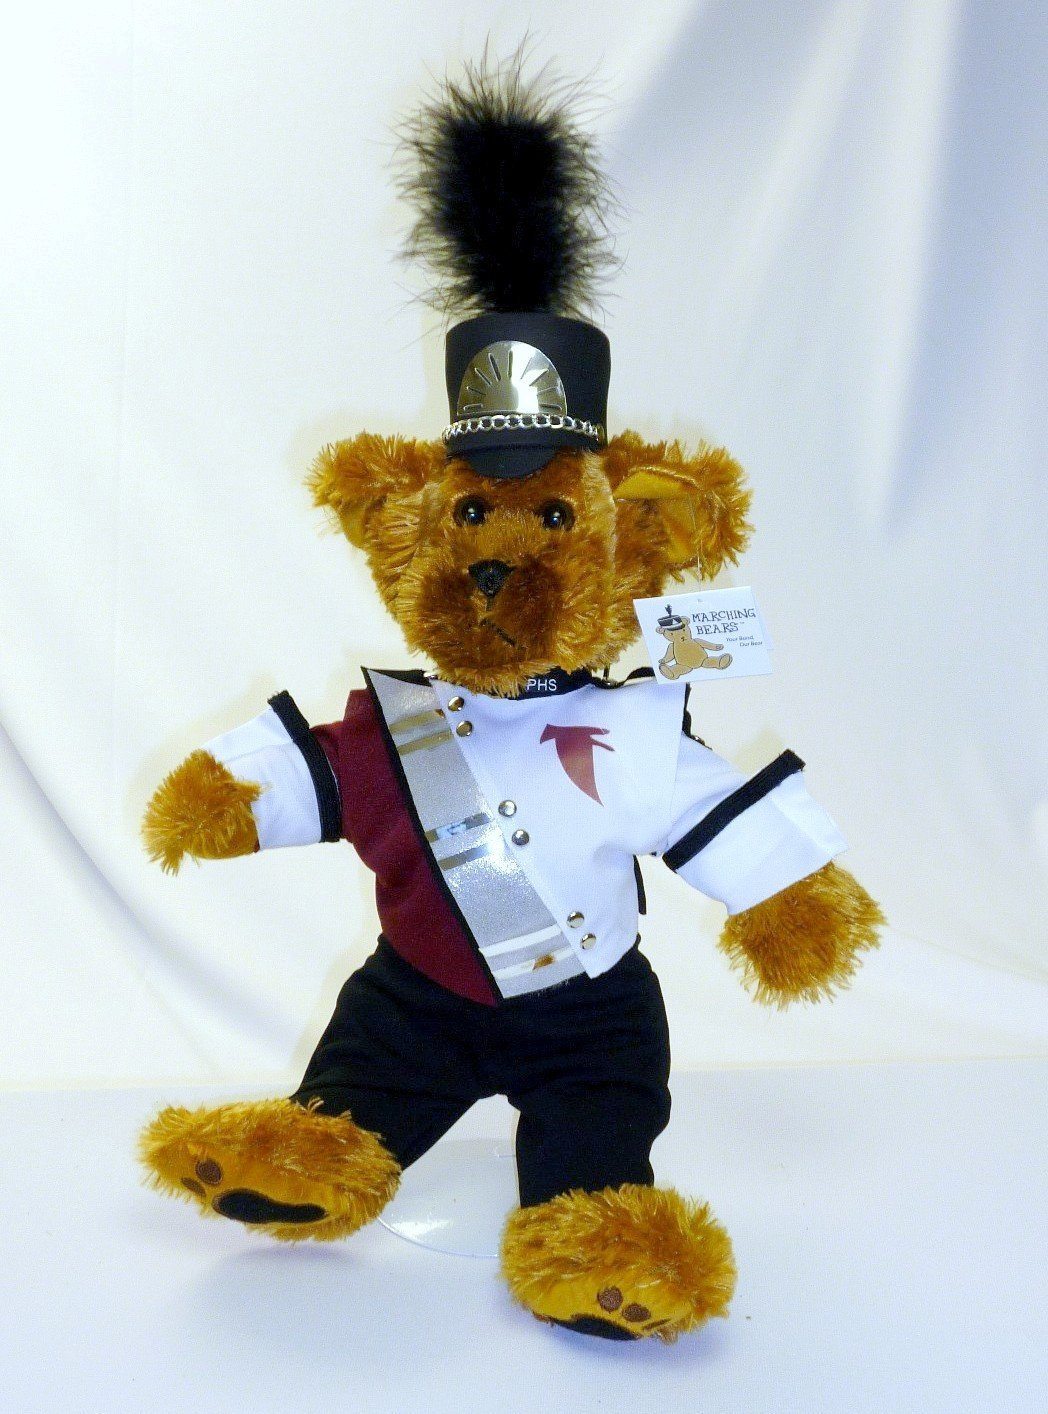 Pottsgrove HS Marching Band Uniform Teddy Bear